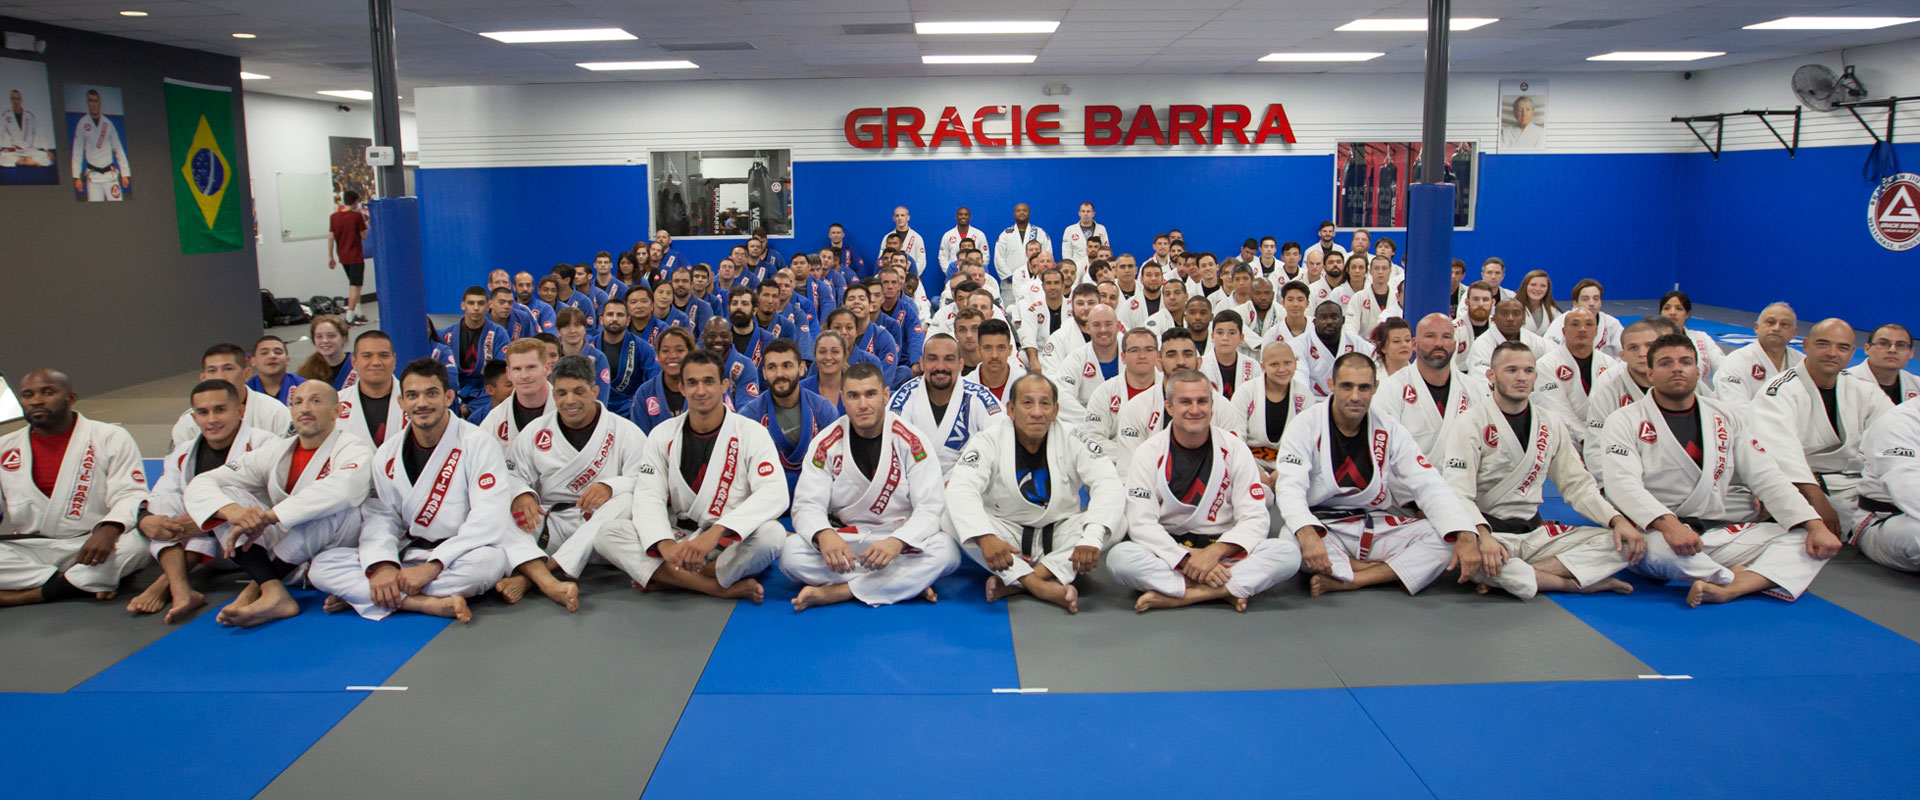 Schedule of Gracie Barra Westchase